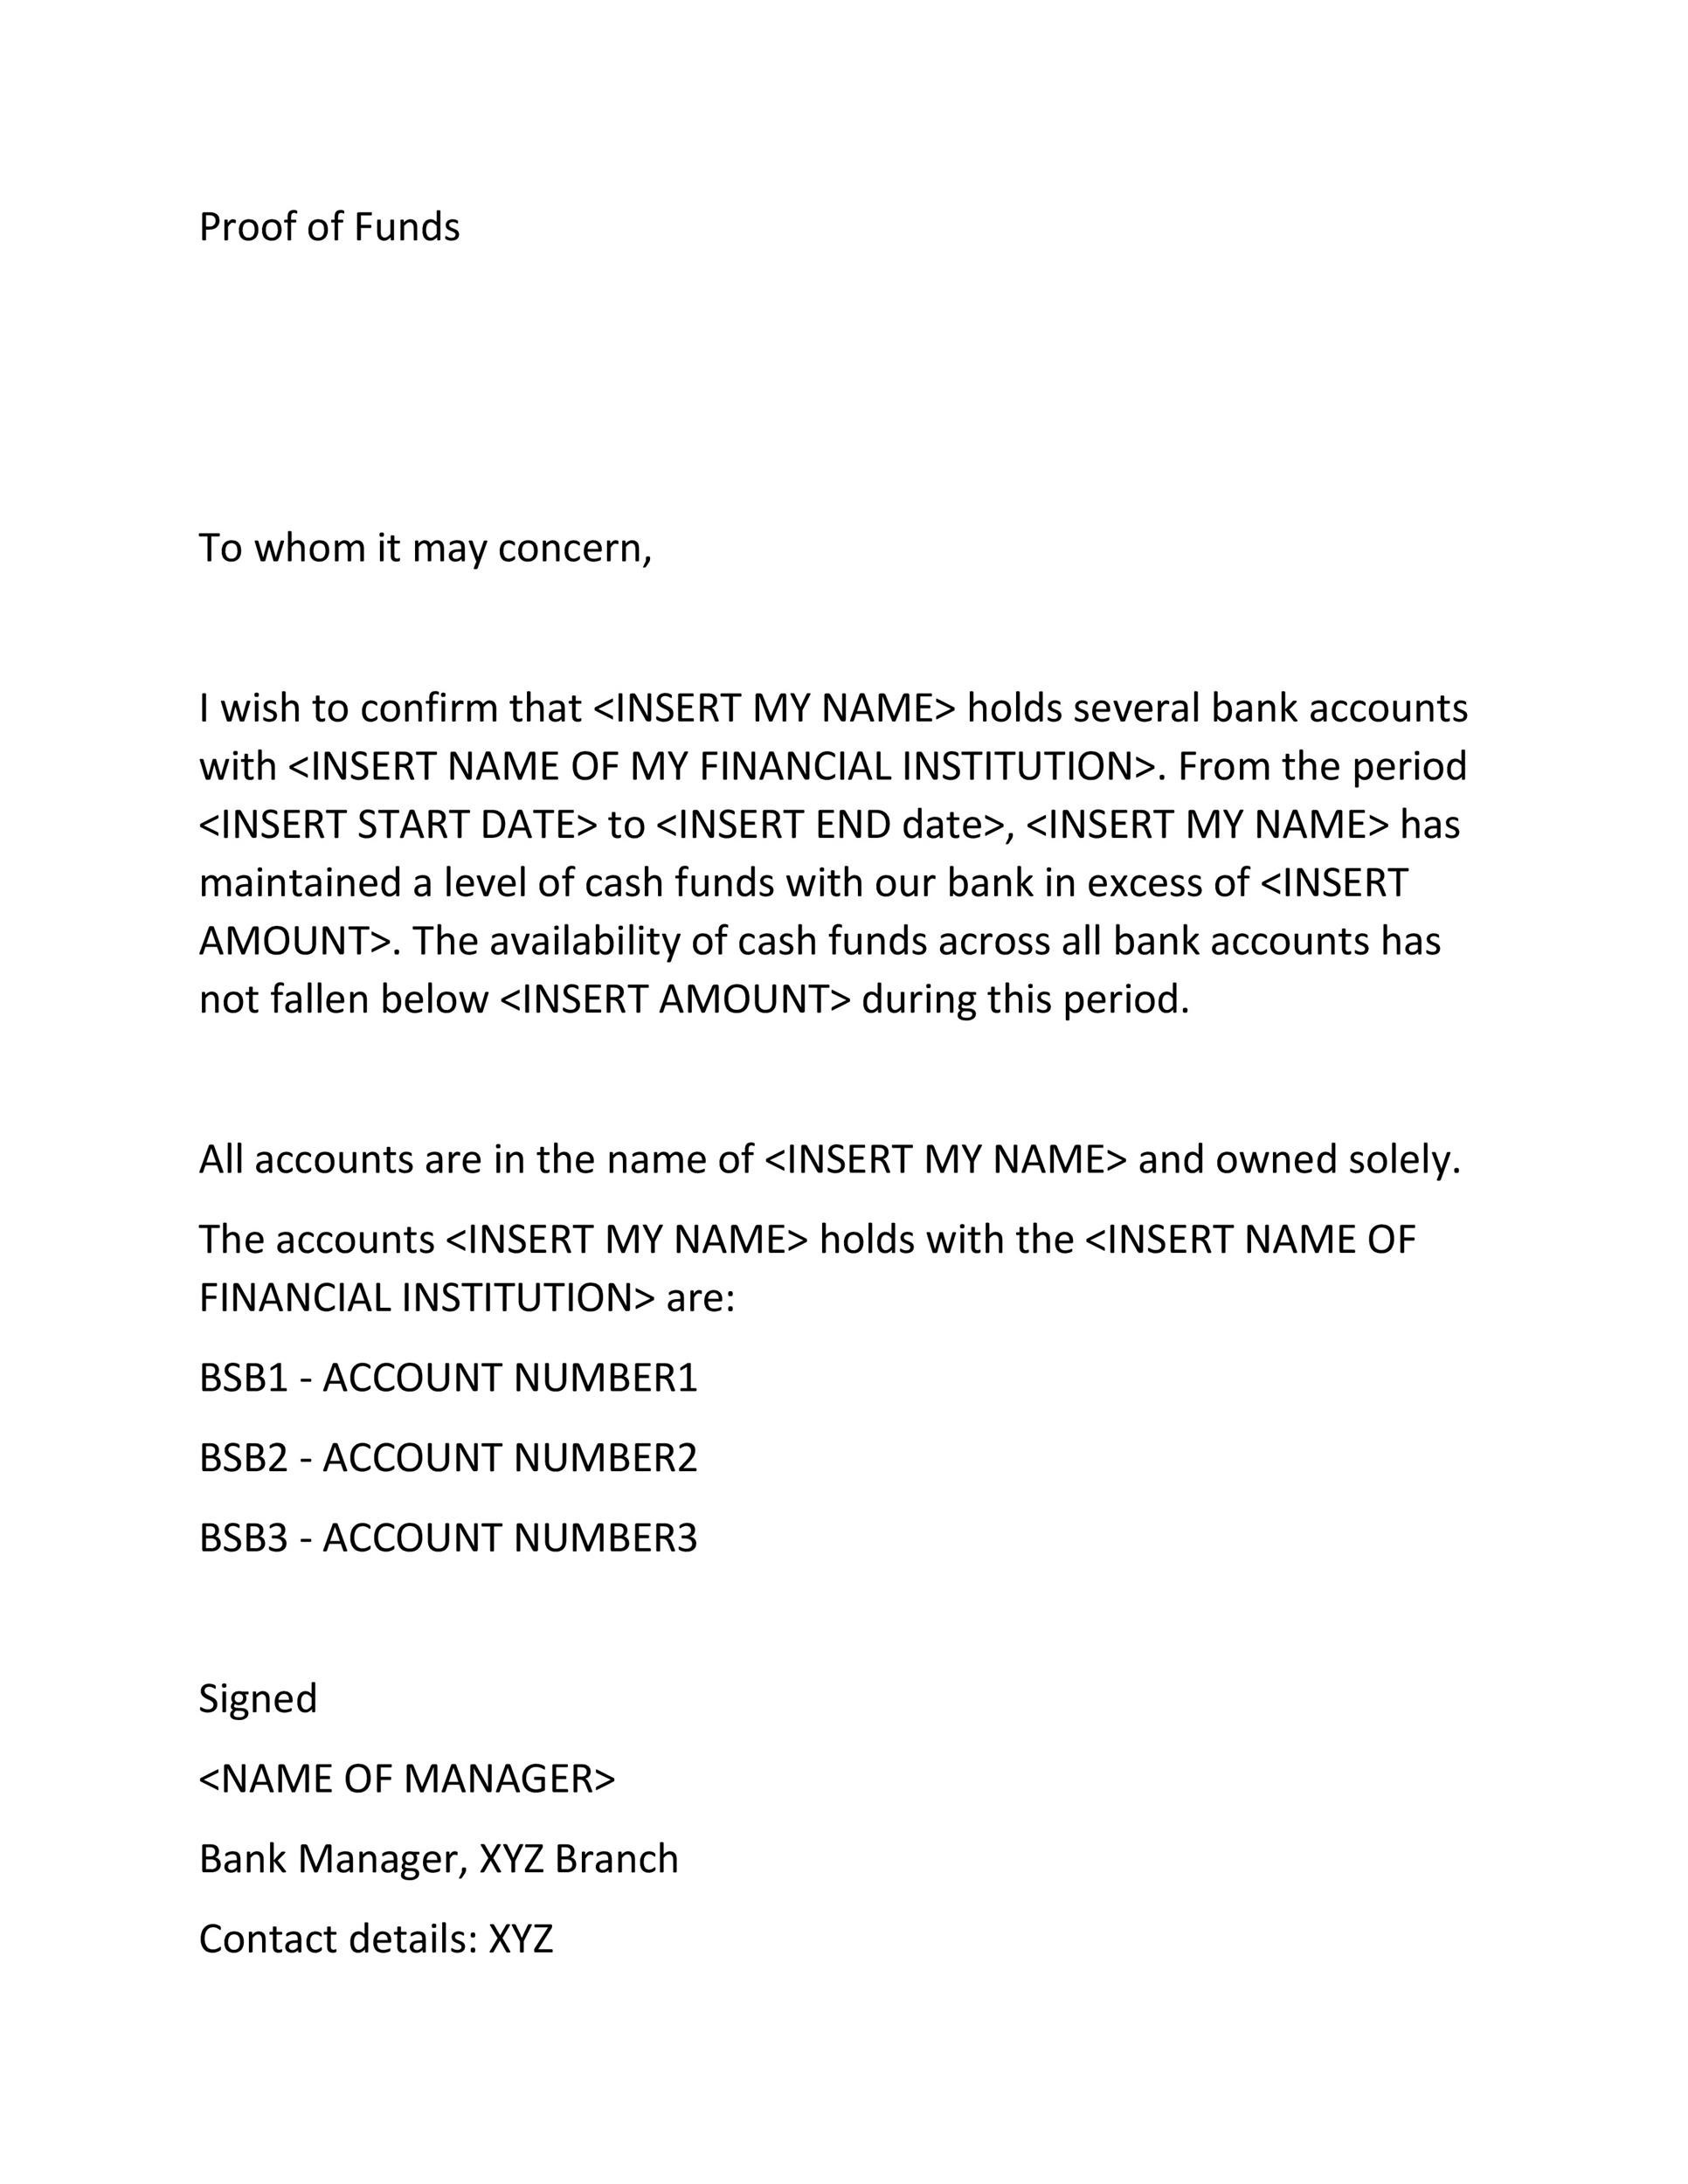 25 Best Proof Of Funds Letter Templates